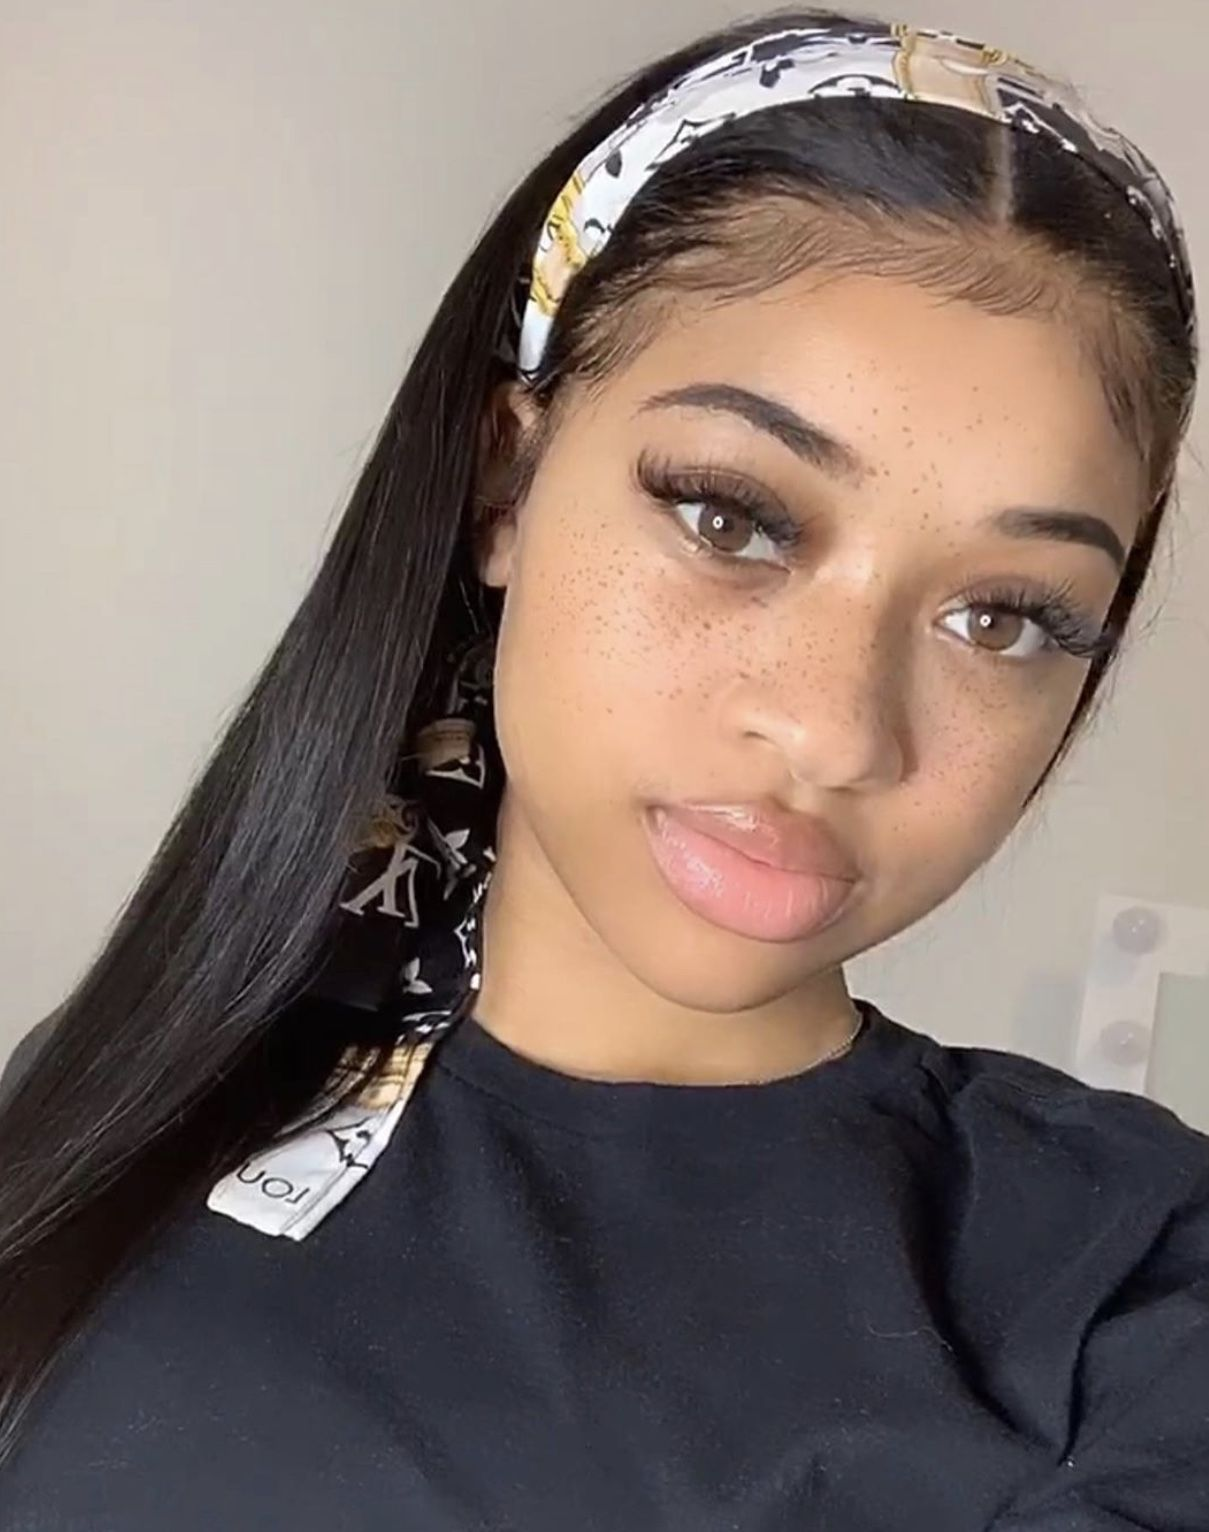 Pin by Laila on Baby hairs in 2020 Cover girl makeup